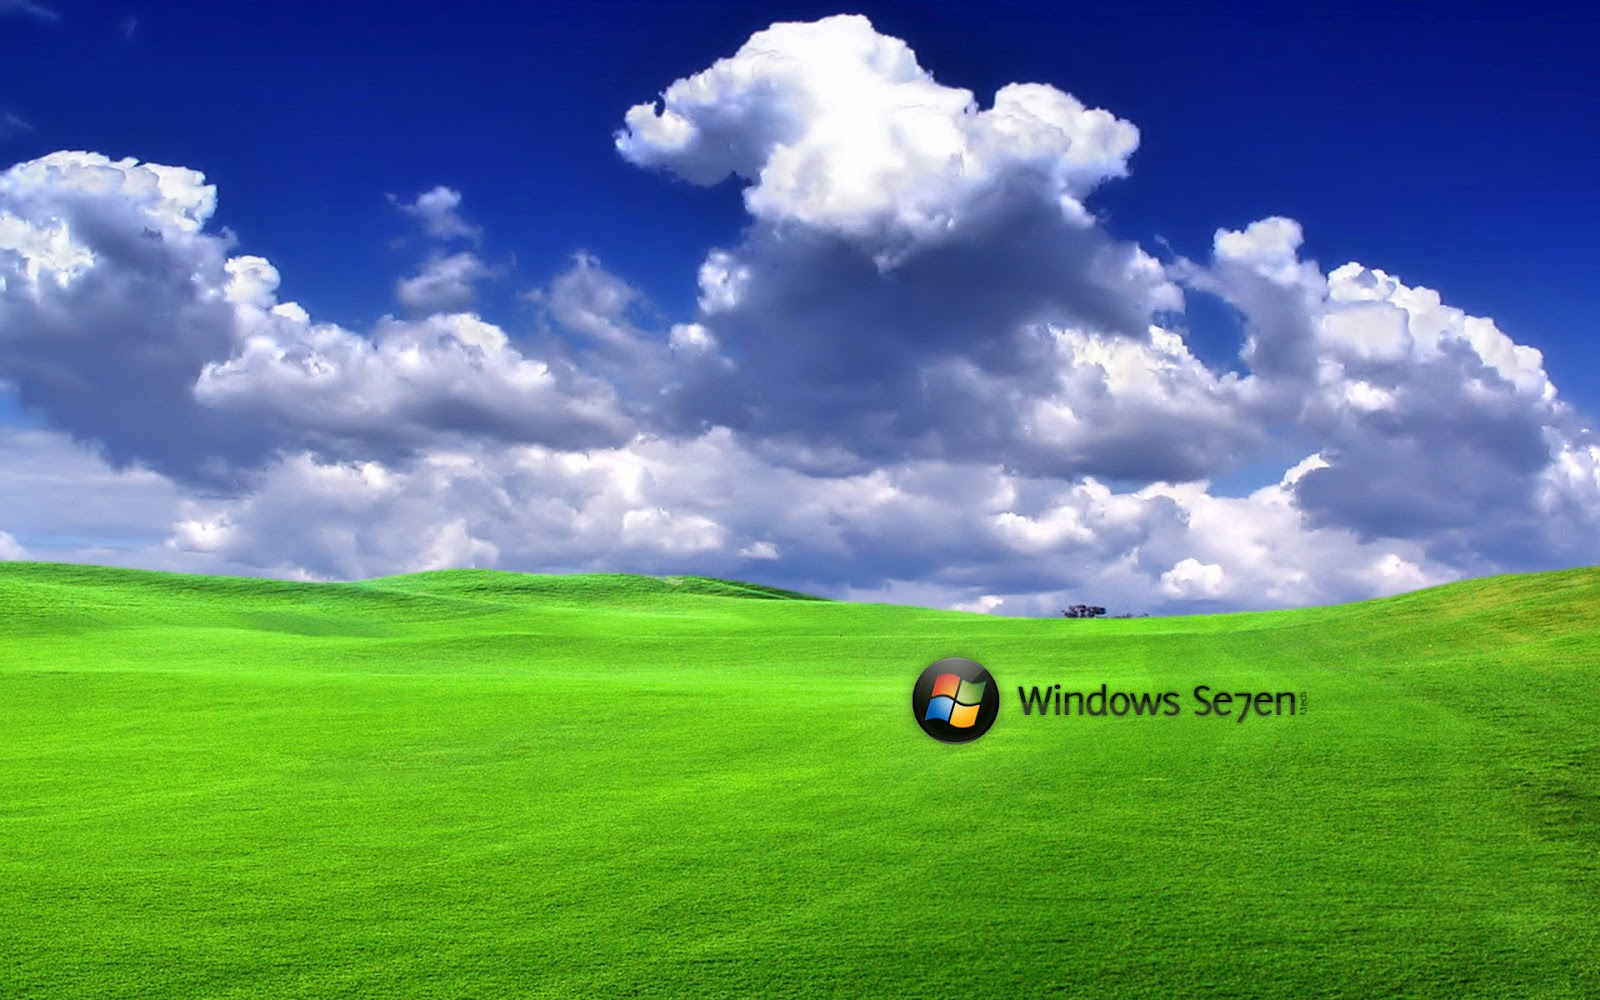 http://4.bp.blogspot.com/-RWI5AqVlJu0/UGqLJCAXCxI/AAAAAAAAAcU/8-ylMhEXEN4/s1600/most-beautiful-windows-7-wallpaper1.jpg